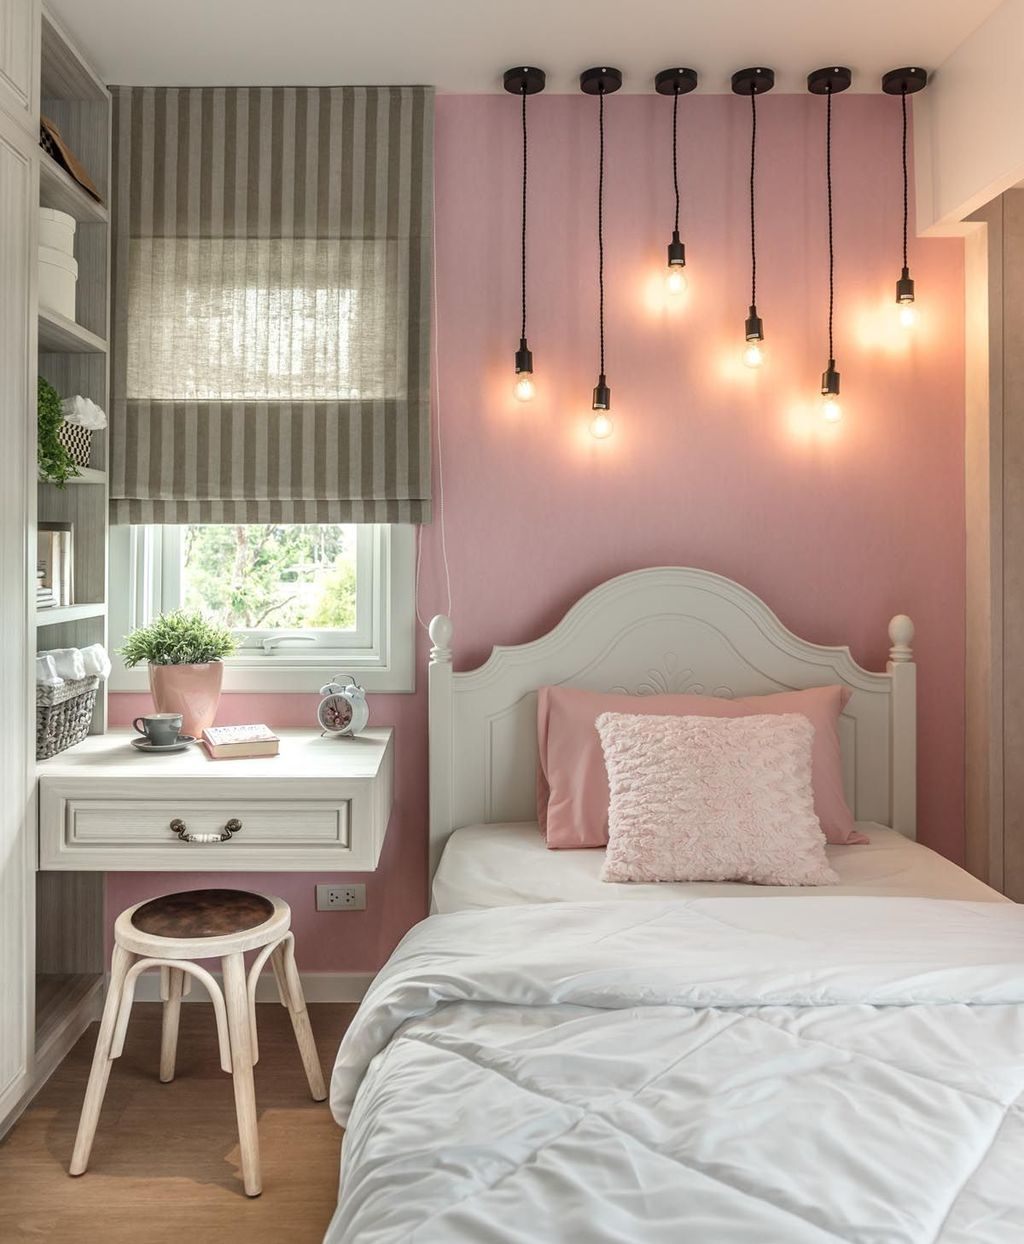 30+ Elegant Decorating Ideas For Small Girl Bedrooms ... on Small Bedroom Ideas For Women  id=96305